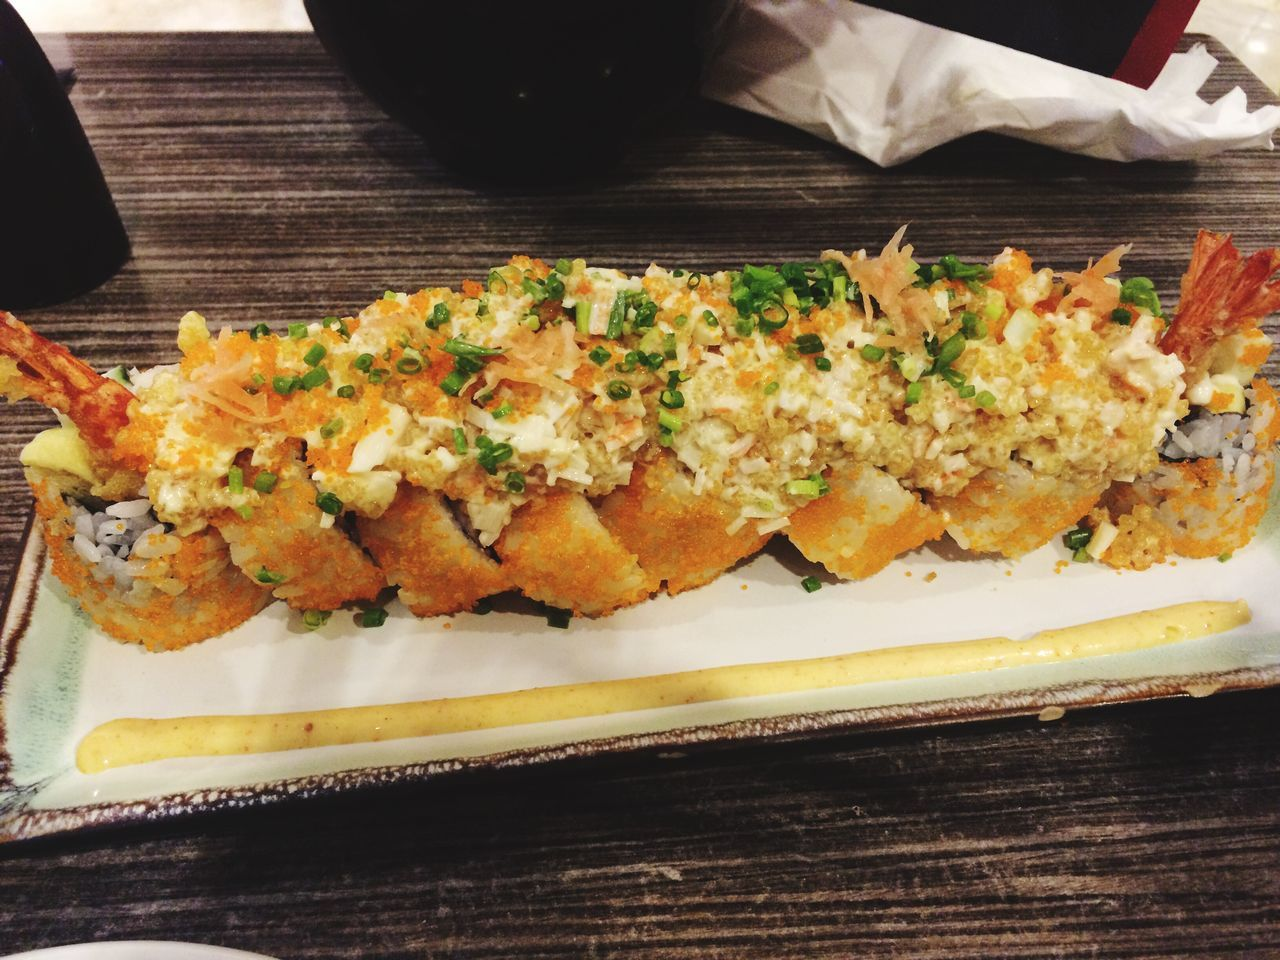 Ultimate Japan Maki Californiamaki Crunch Californiamakiroll Japanese Mayo Favoritefood Loveformaki Jipan Glorietta Ayala AyalaMalls